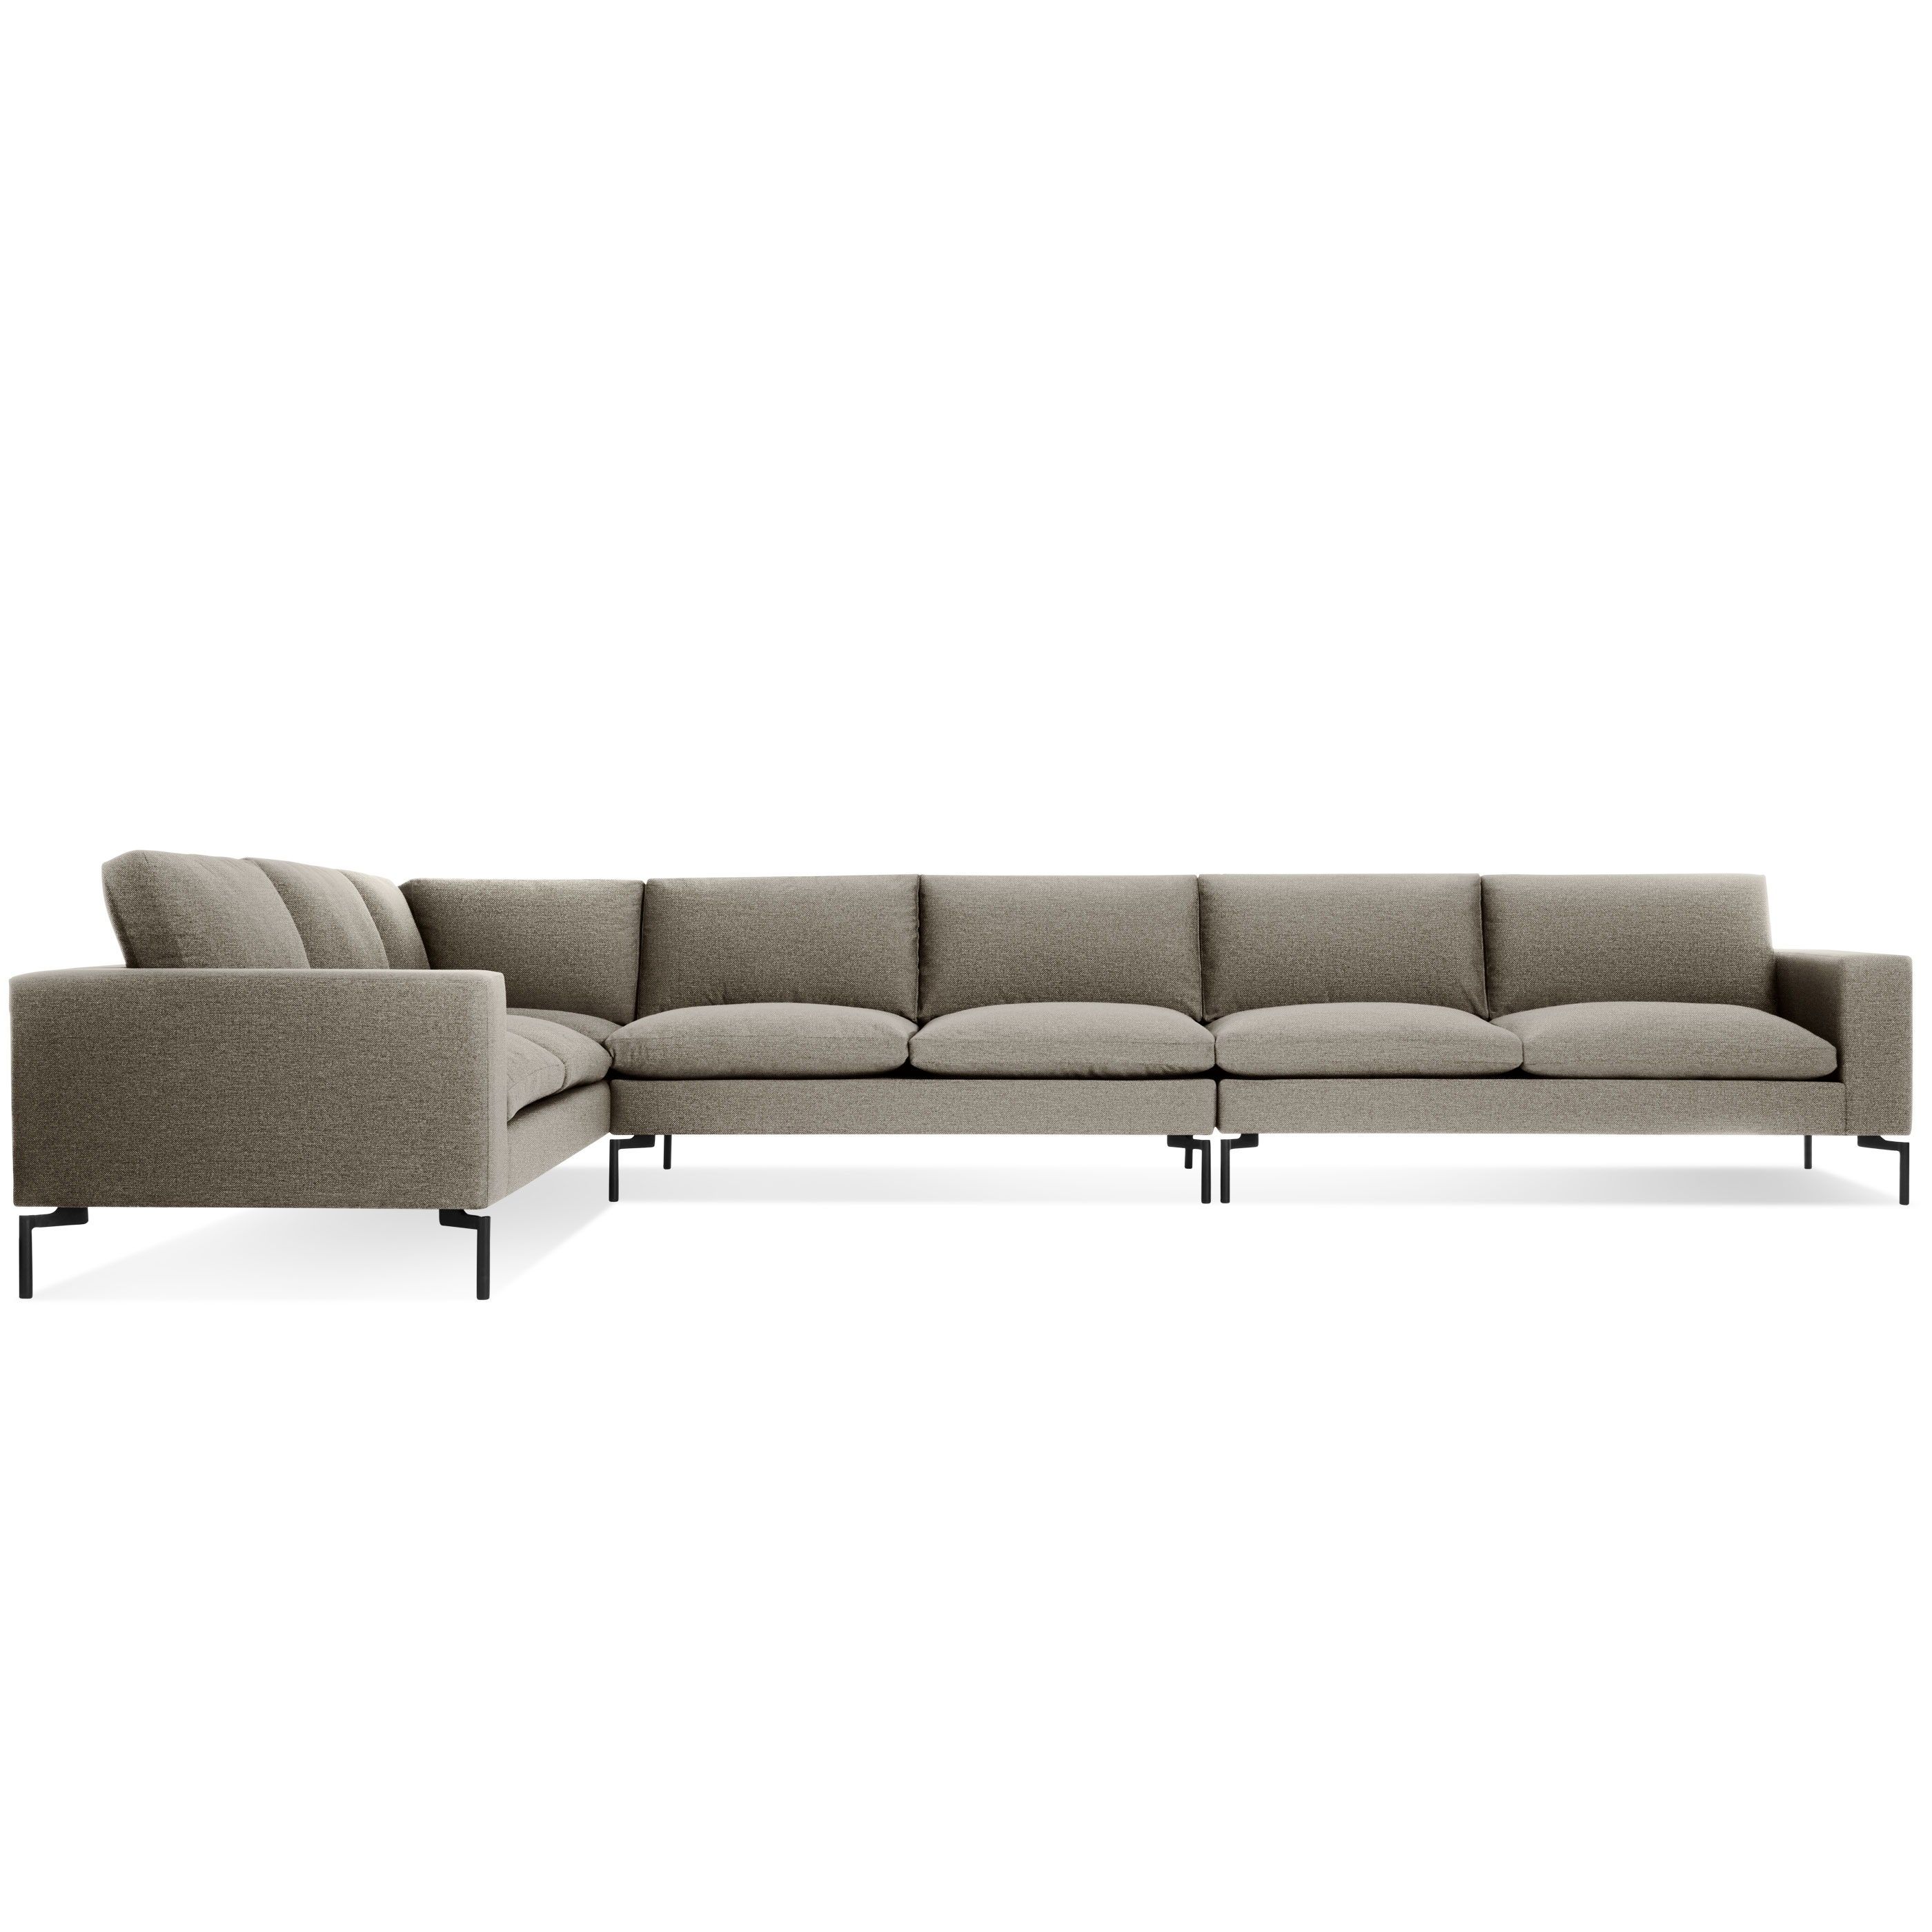 New Standard Large Sectional Sofa – Large Sofas | Blu Dot With Newfoundland Sectional Sofas (View 10 of 10)